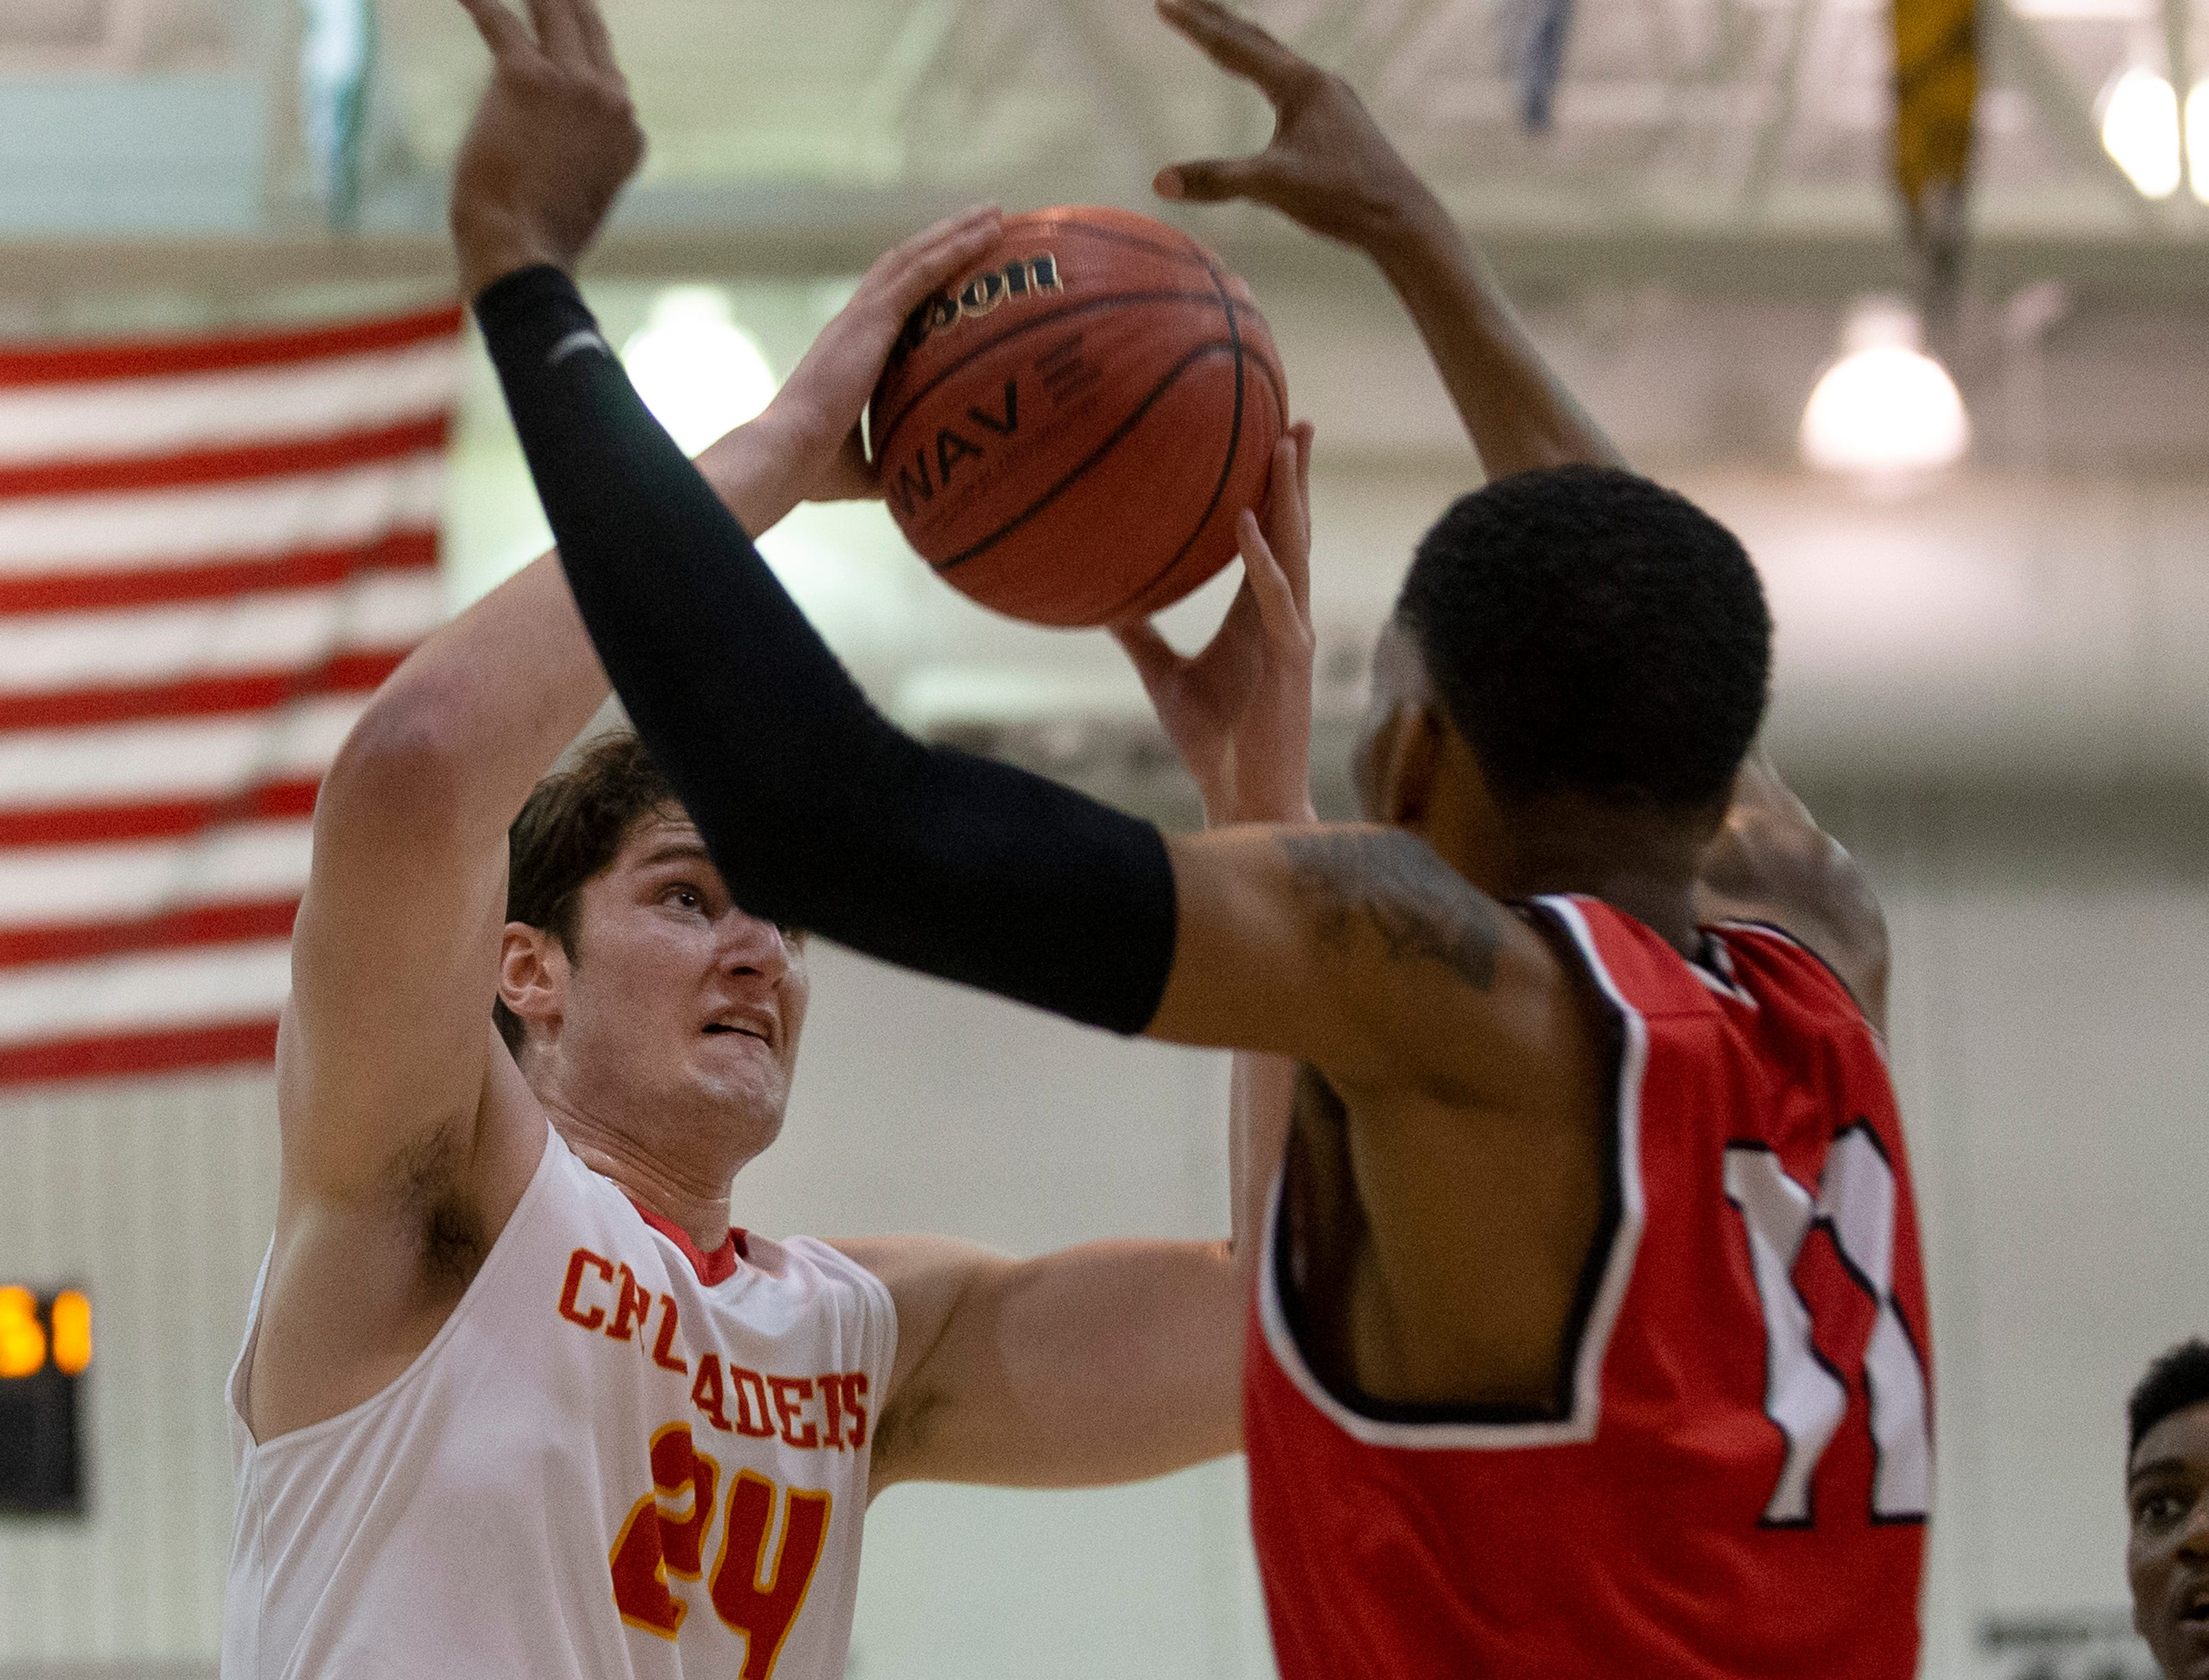 Matt Zona, Bergen Catholic looks for an opening. Bergen Catholic vs. Newark East Side in the 5:30 p.m. semifinals of the 2019 NJSIAA Tournament of Champions in Toms River on March 15, 2019.